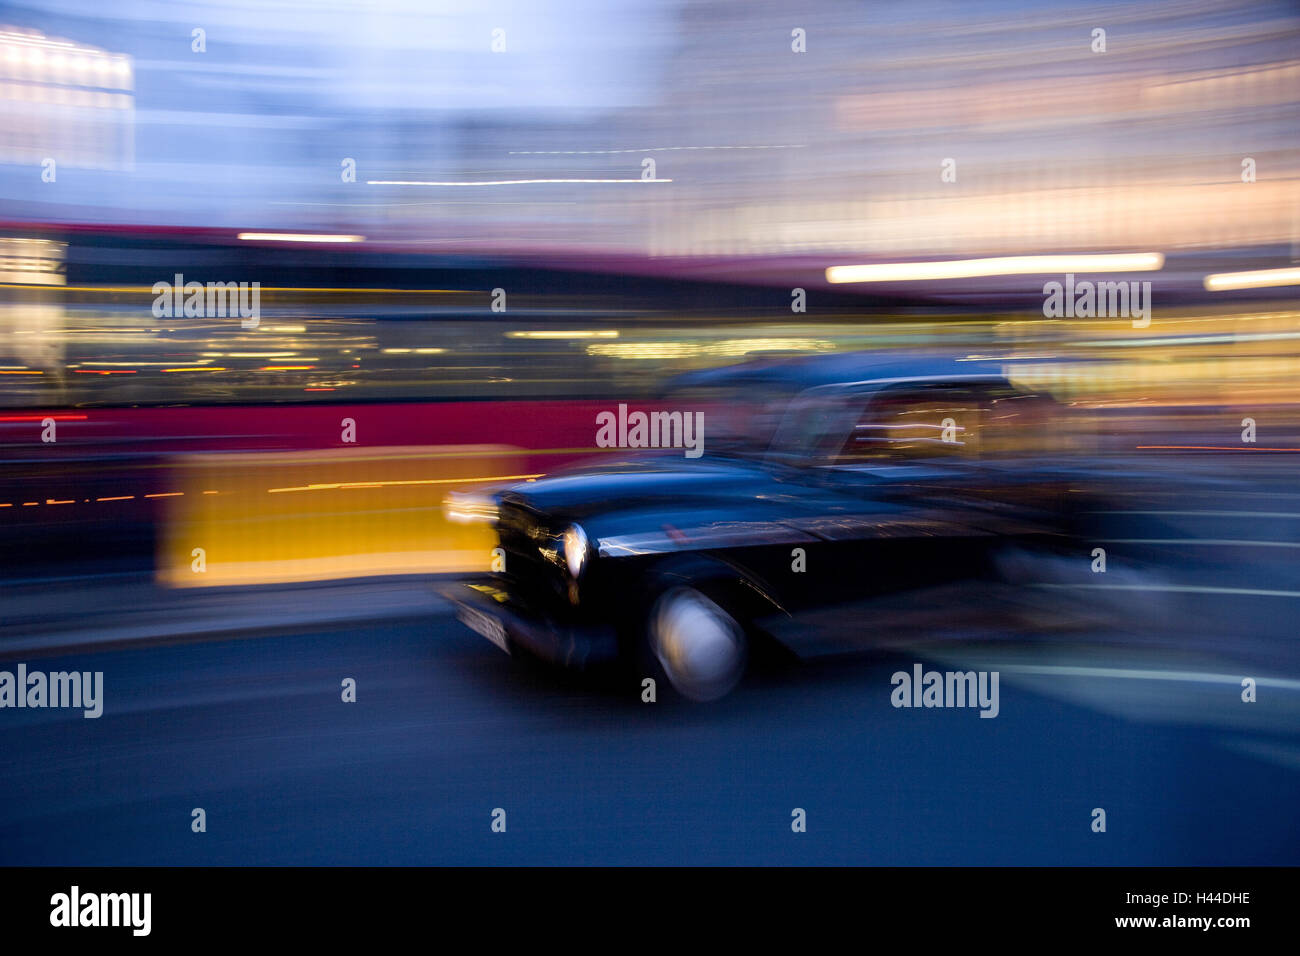 Taxi, Picadilly Circus, blur, London, England, Great Britain, Stock Photo